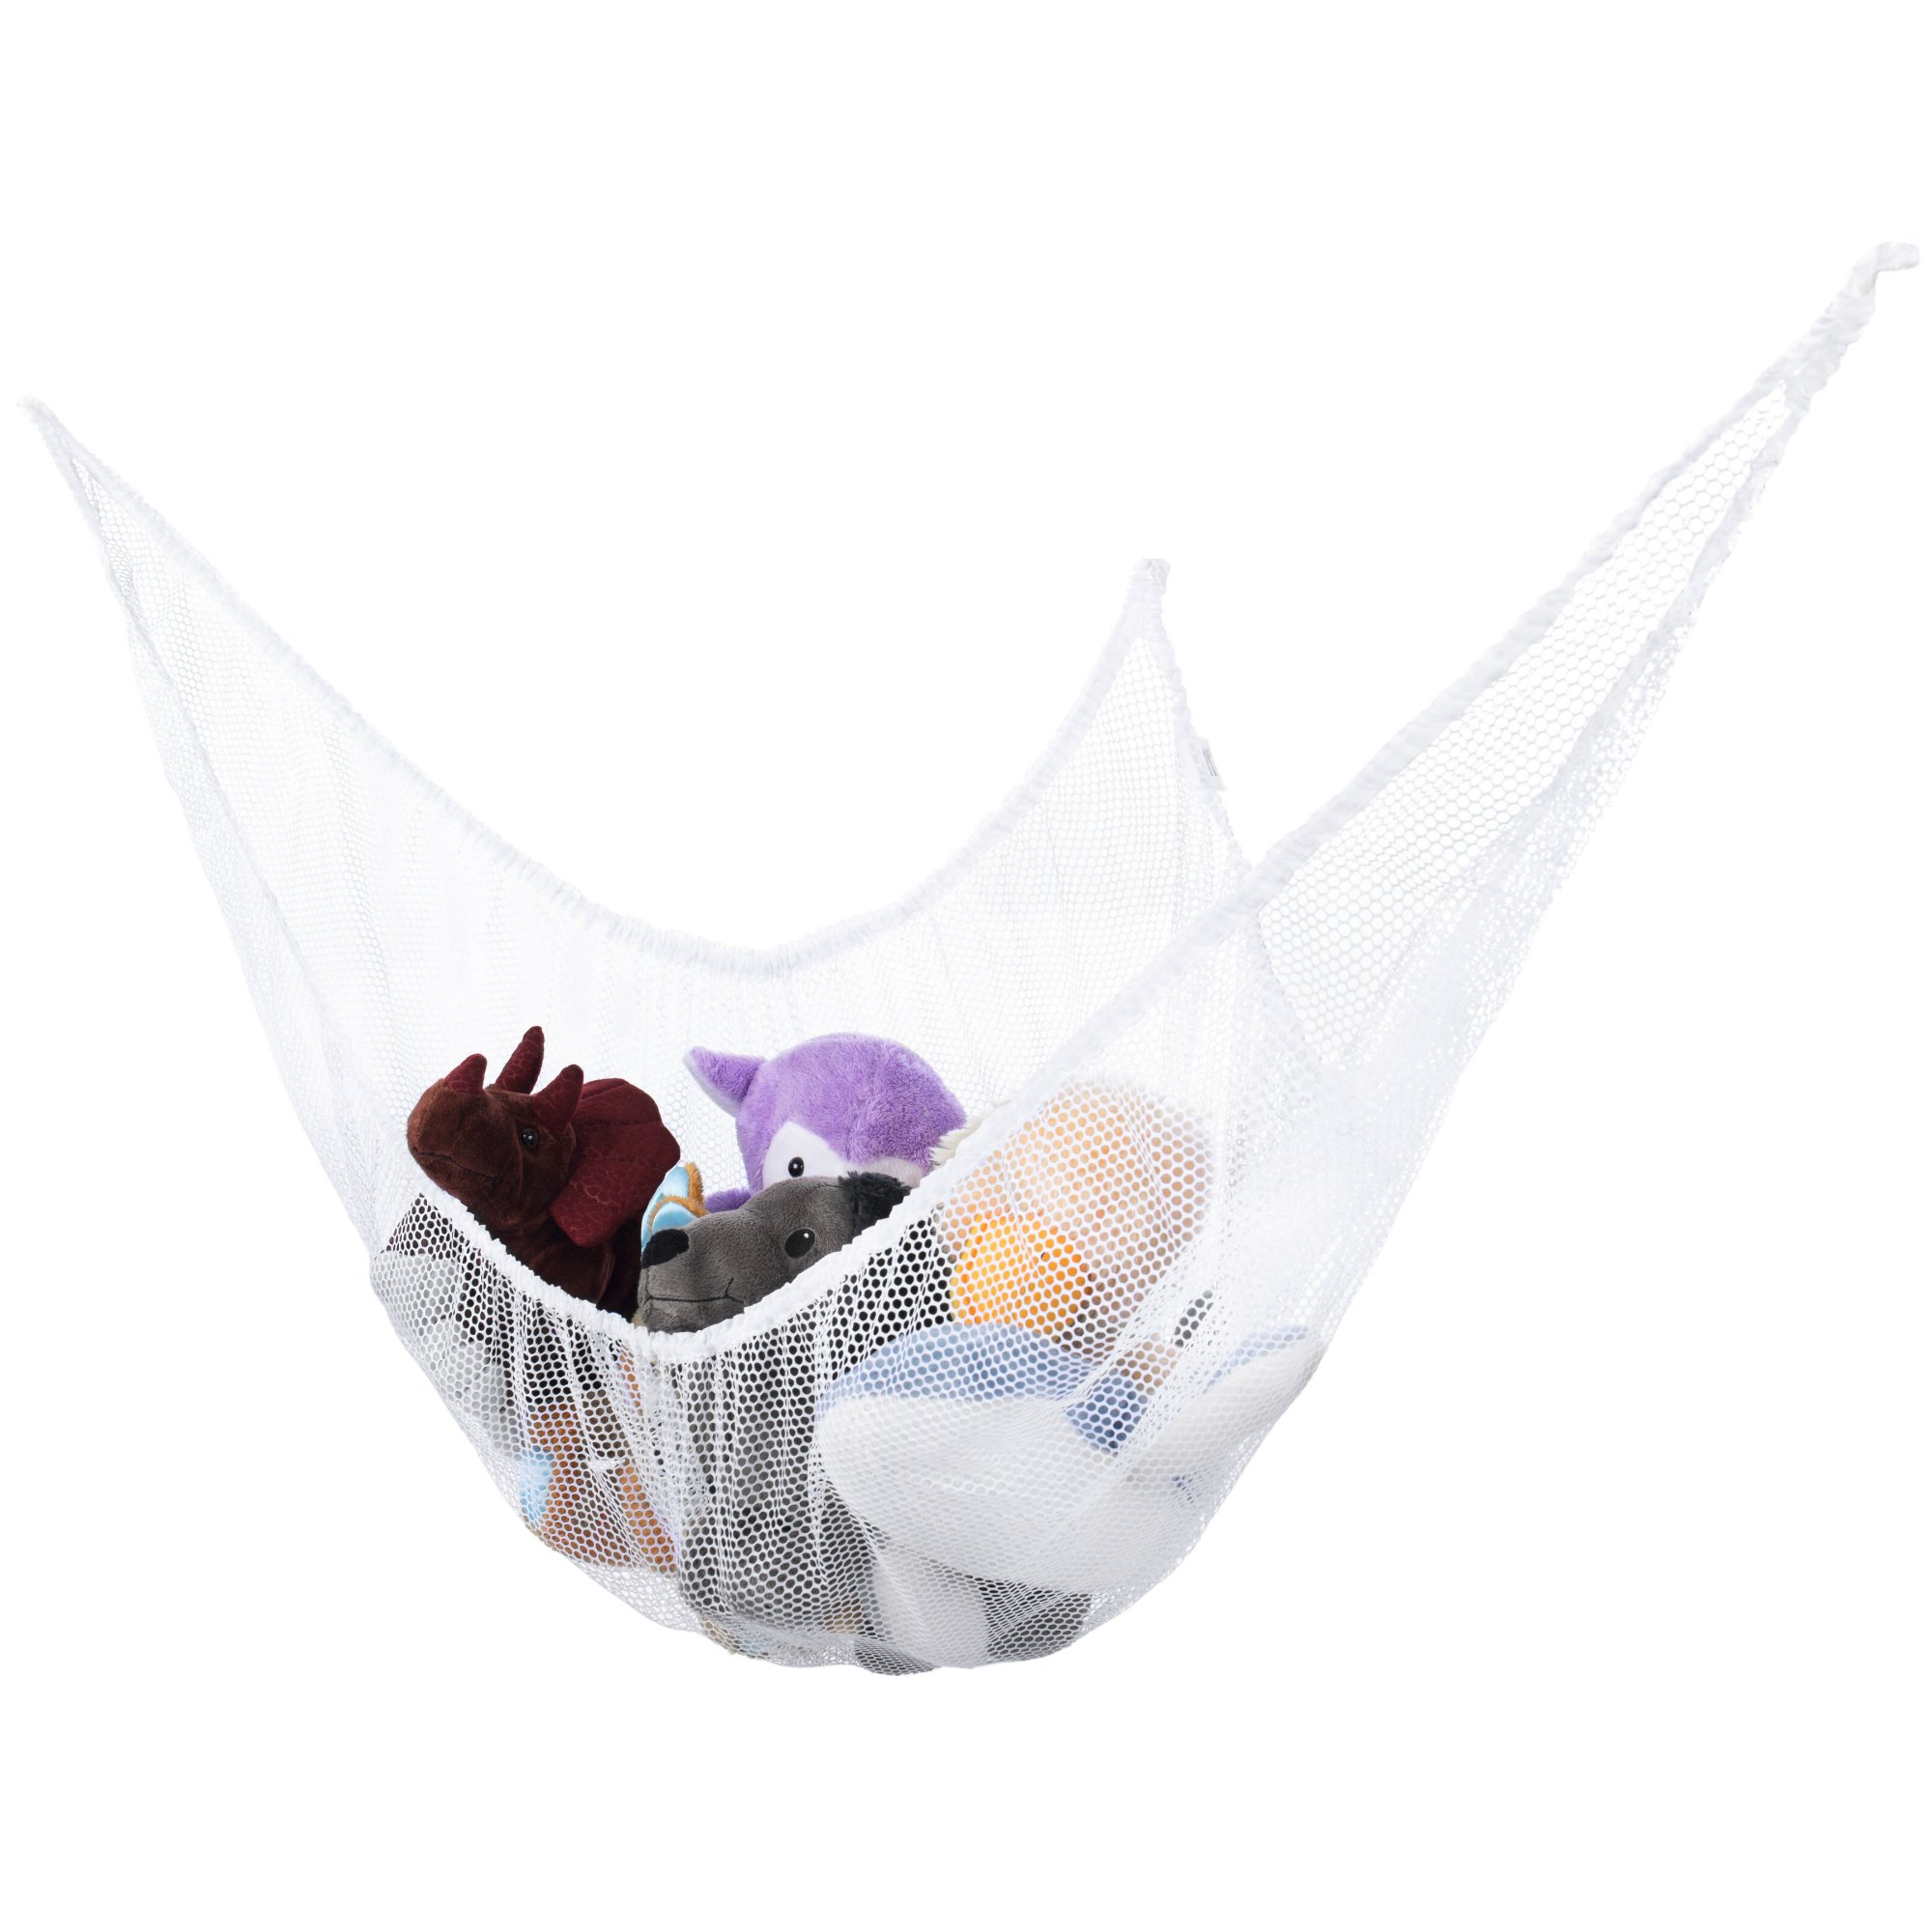 Stuffed Animal Hammock Toy Storage: Hanging Net Corner Wall Organizer for Storing Plush Toys, Pool Toys, Sports Gear, Baby Toys, Bedding & Towels: Extra Large 7' Mesh Child Safe Corner Pet Net